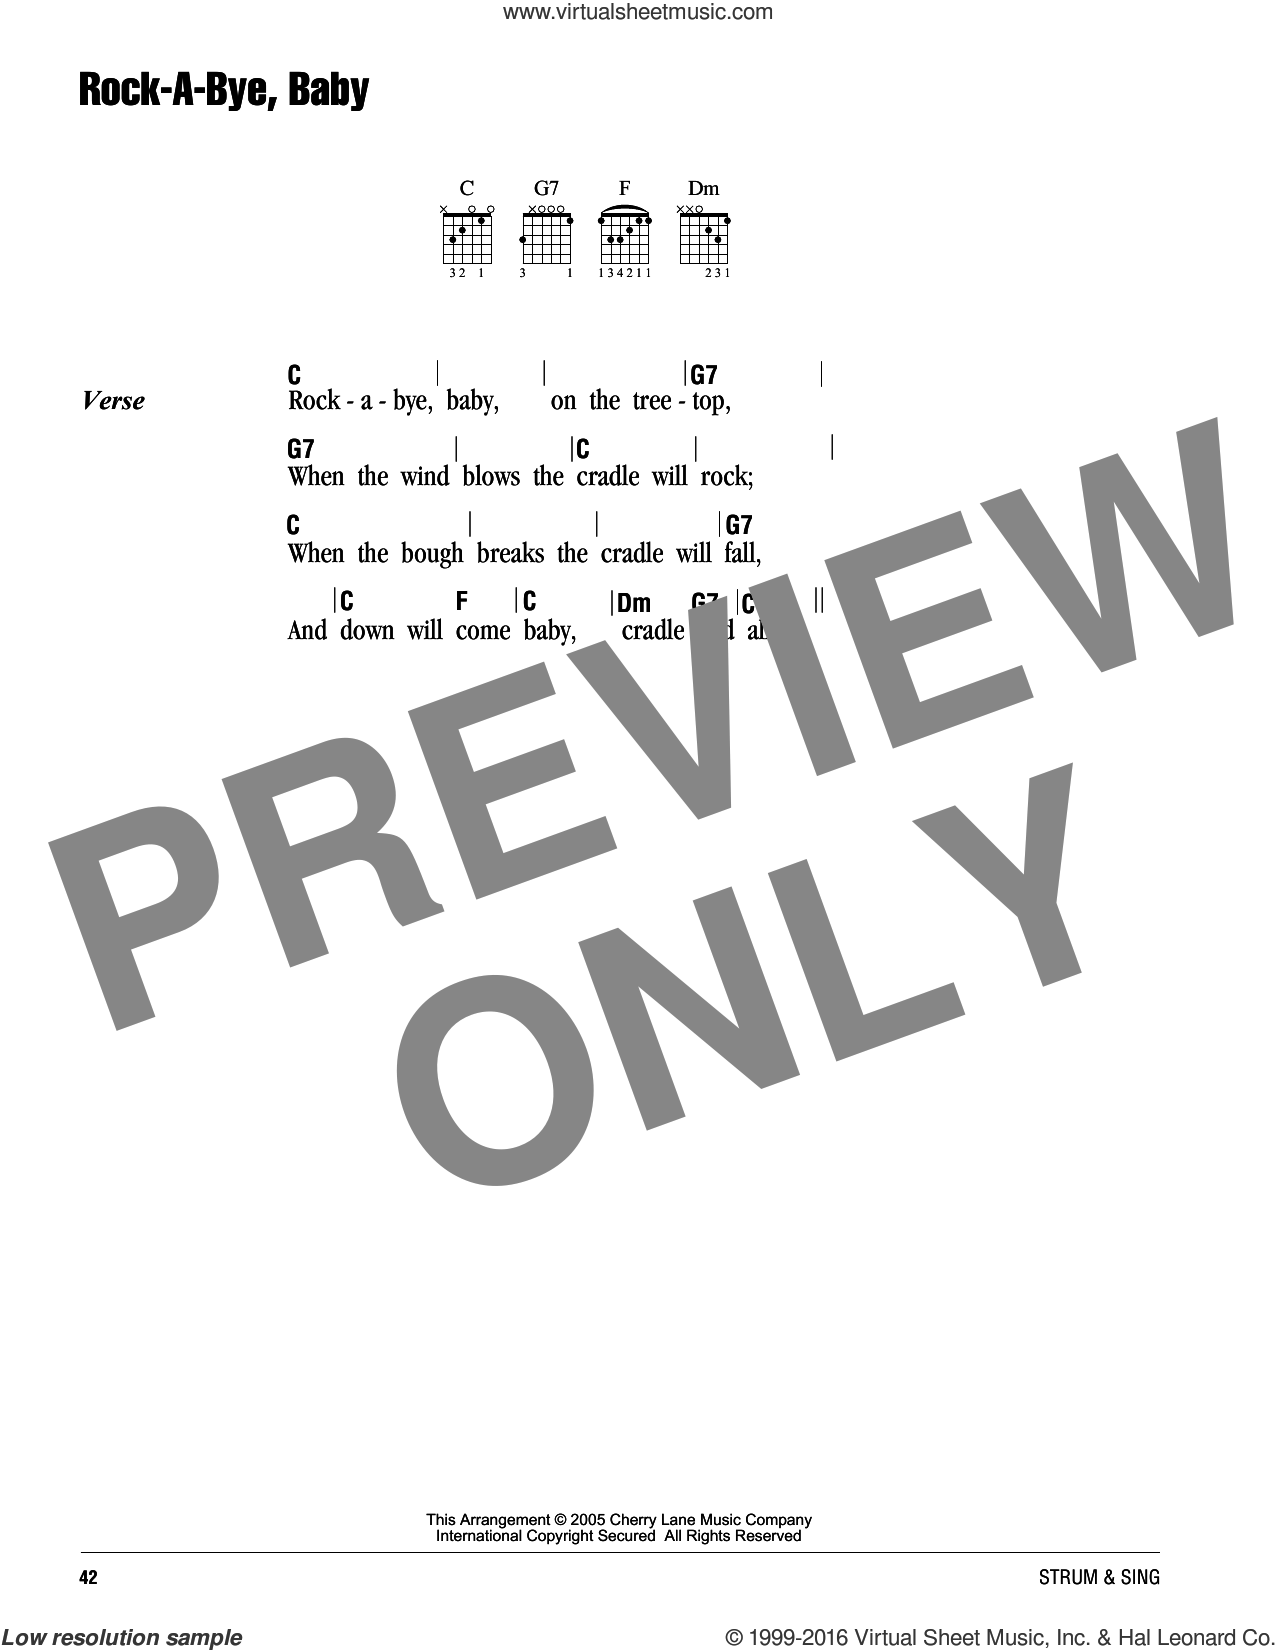 Rock-A-Bye, Baby sheet music for guitar (chords). Score Image Preview.